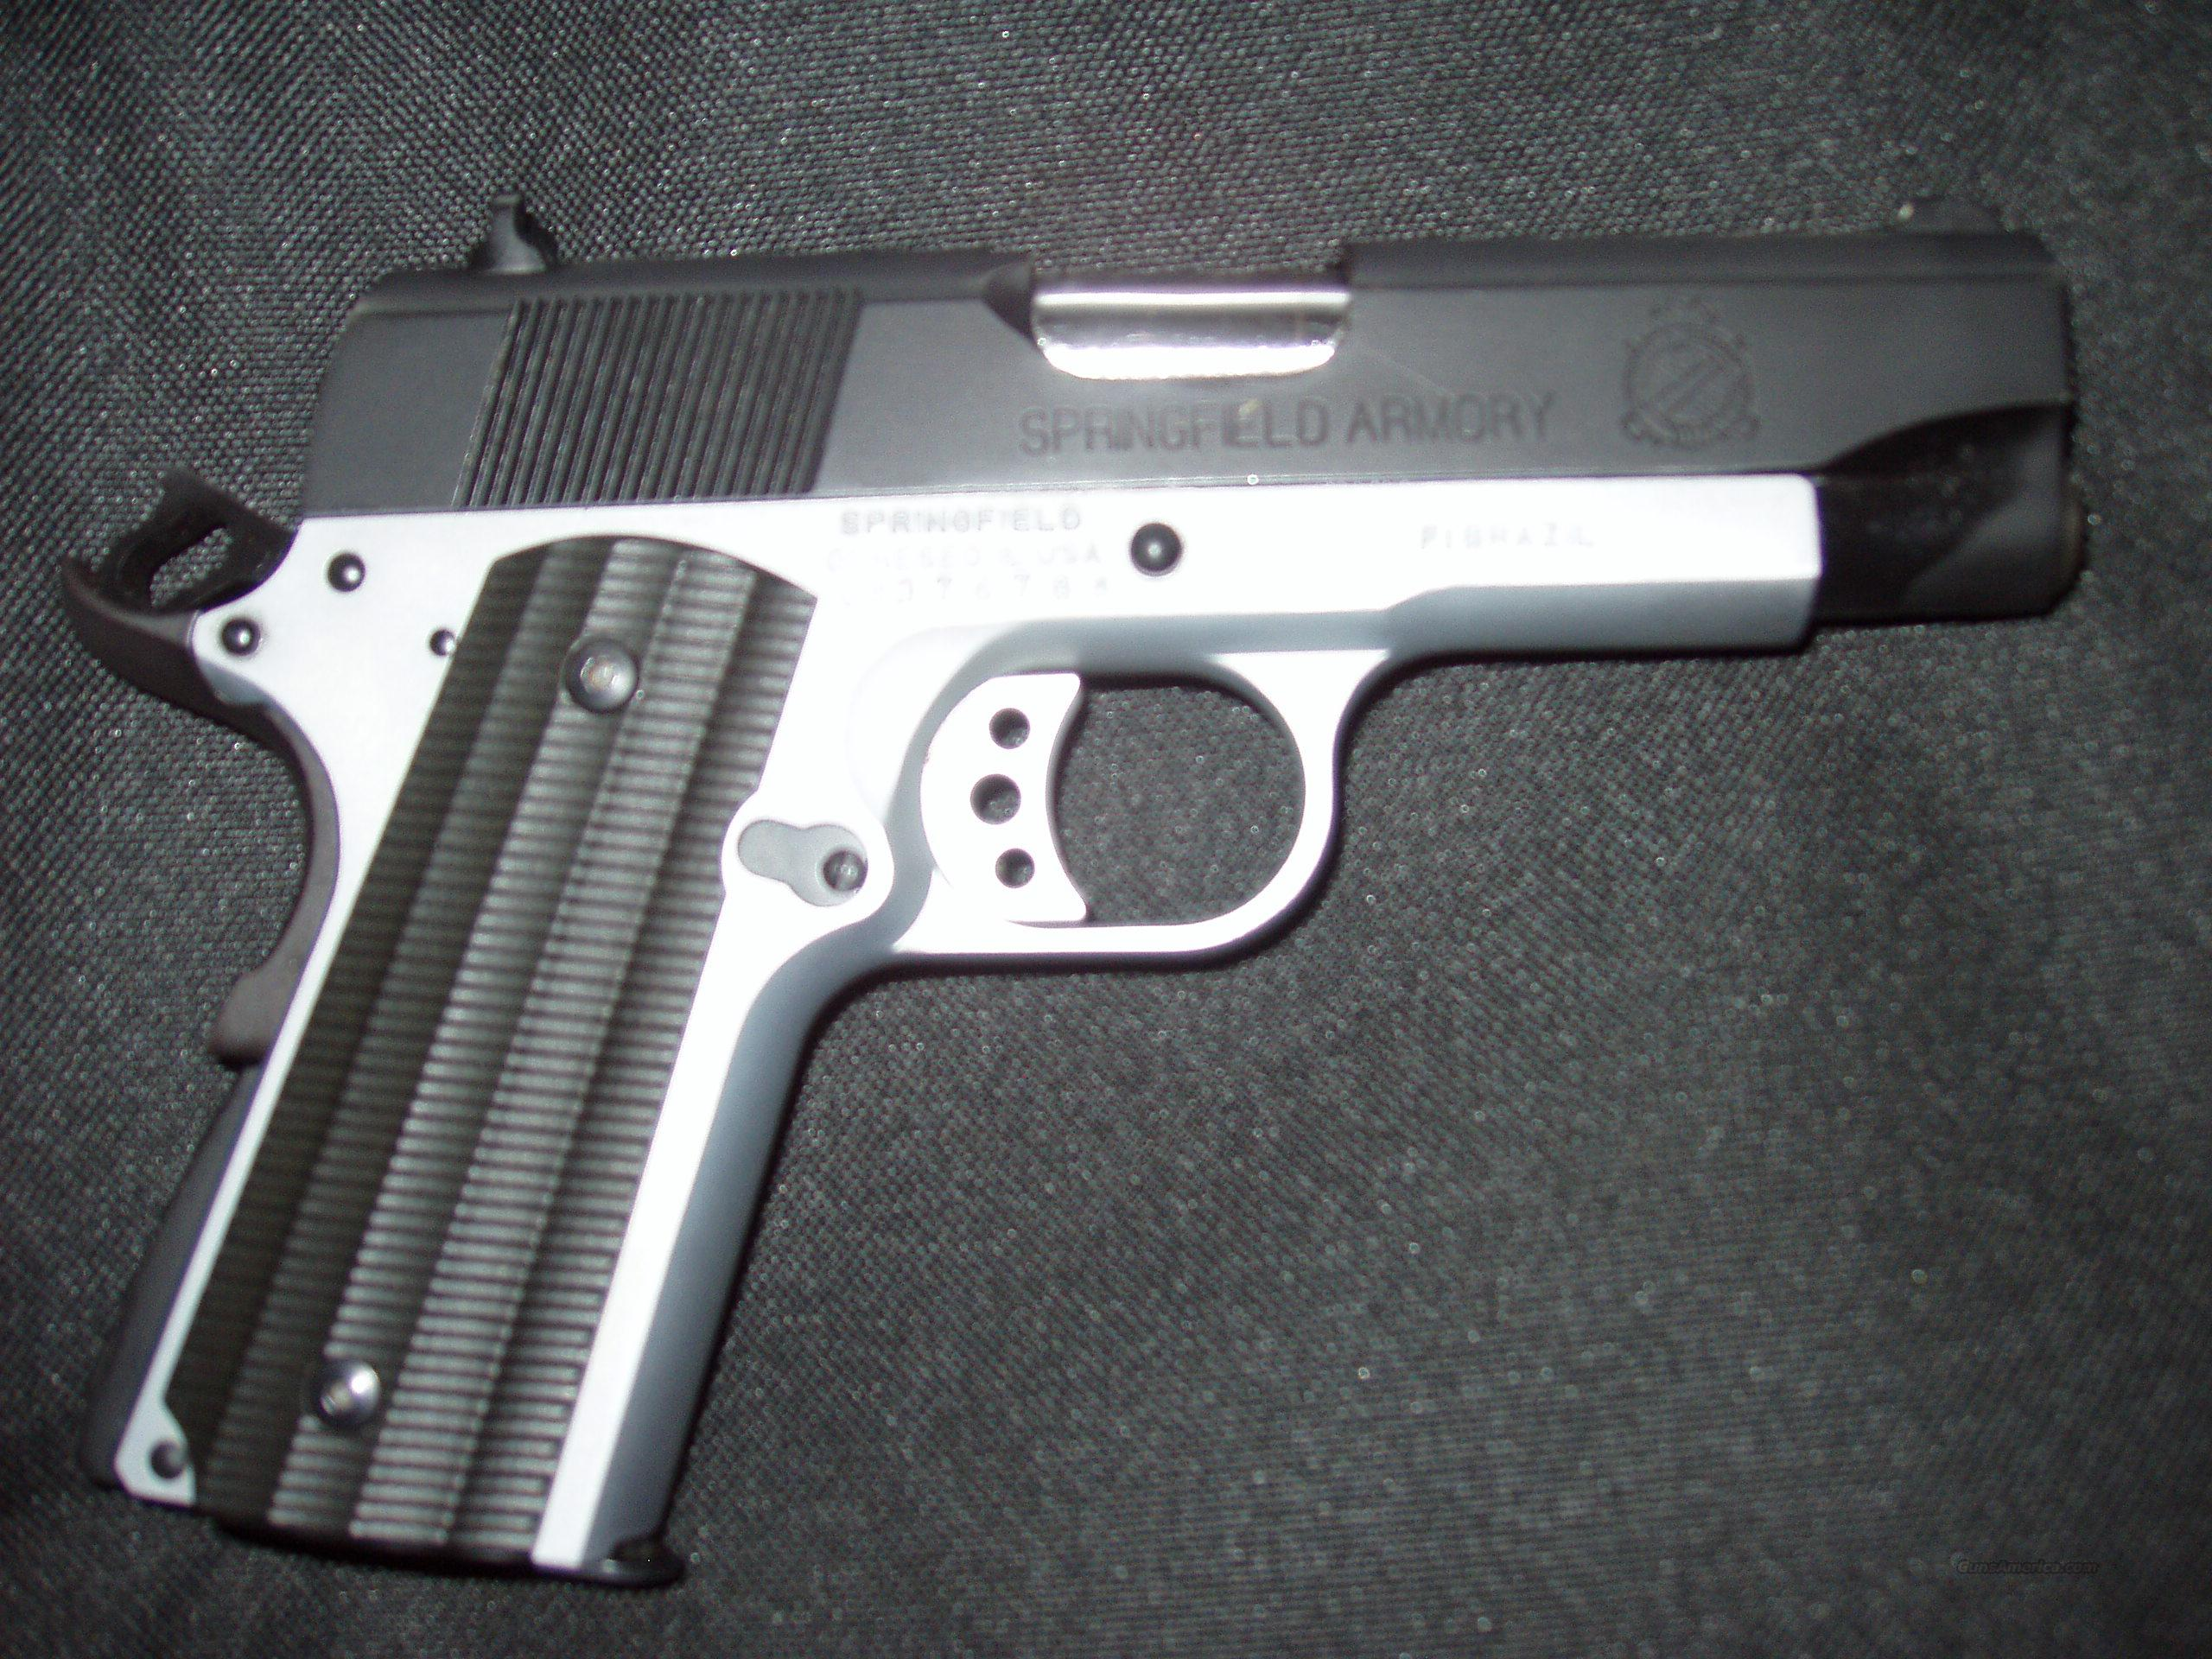 Springfield Armory Light Weight Compact-Two Tone  Guns > Pistols > Springfield Armory Pistols > 1911 Type